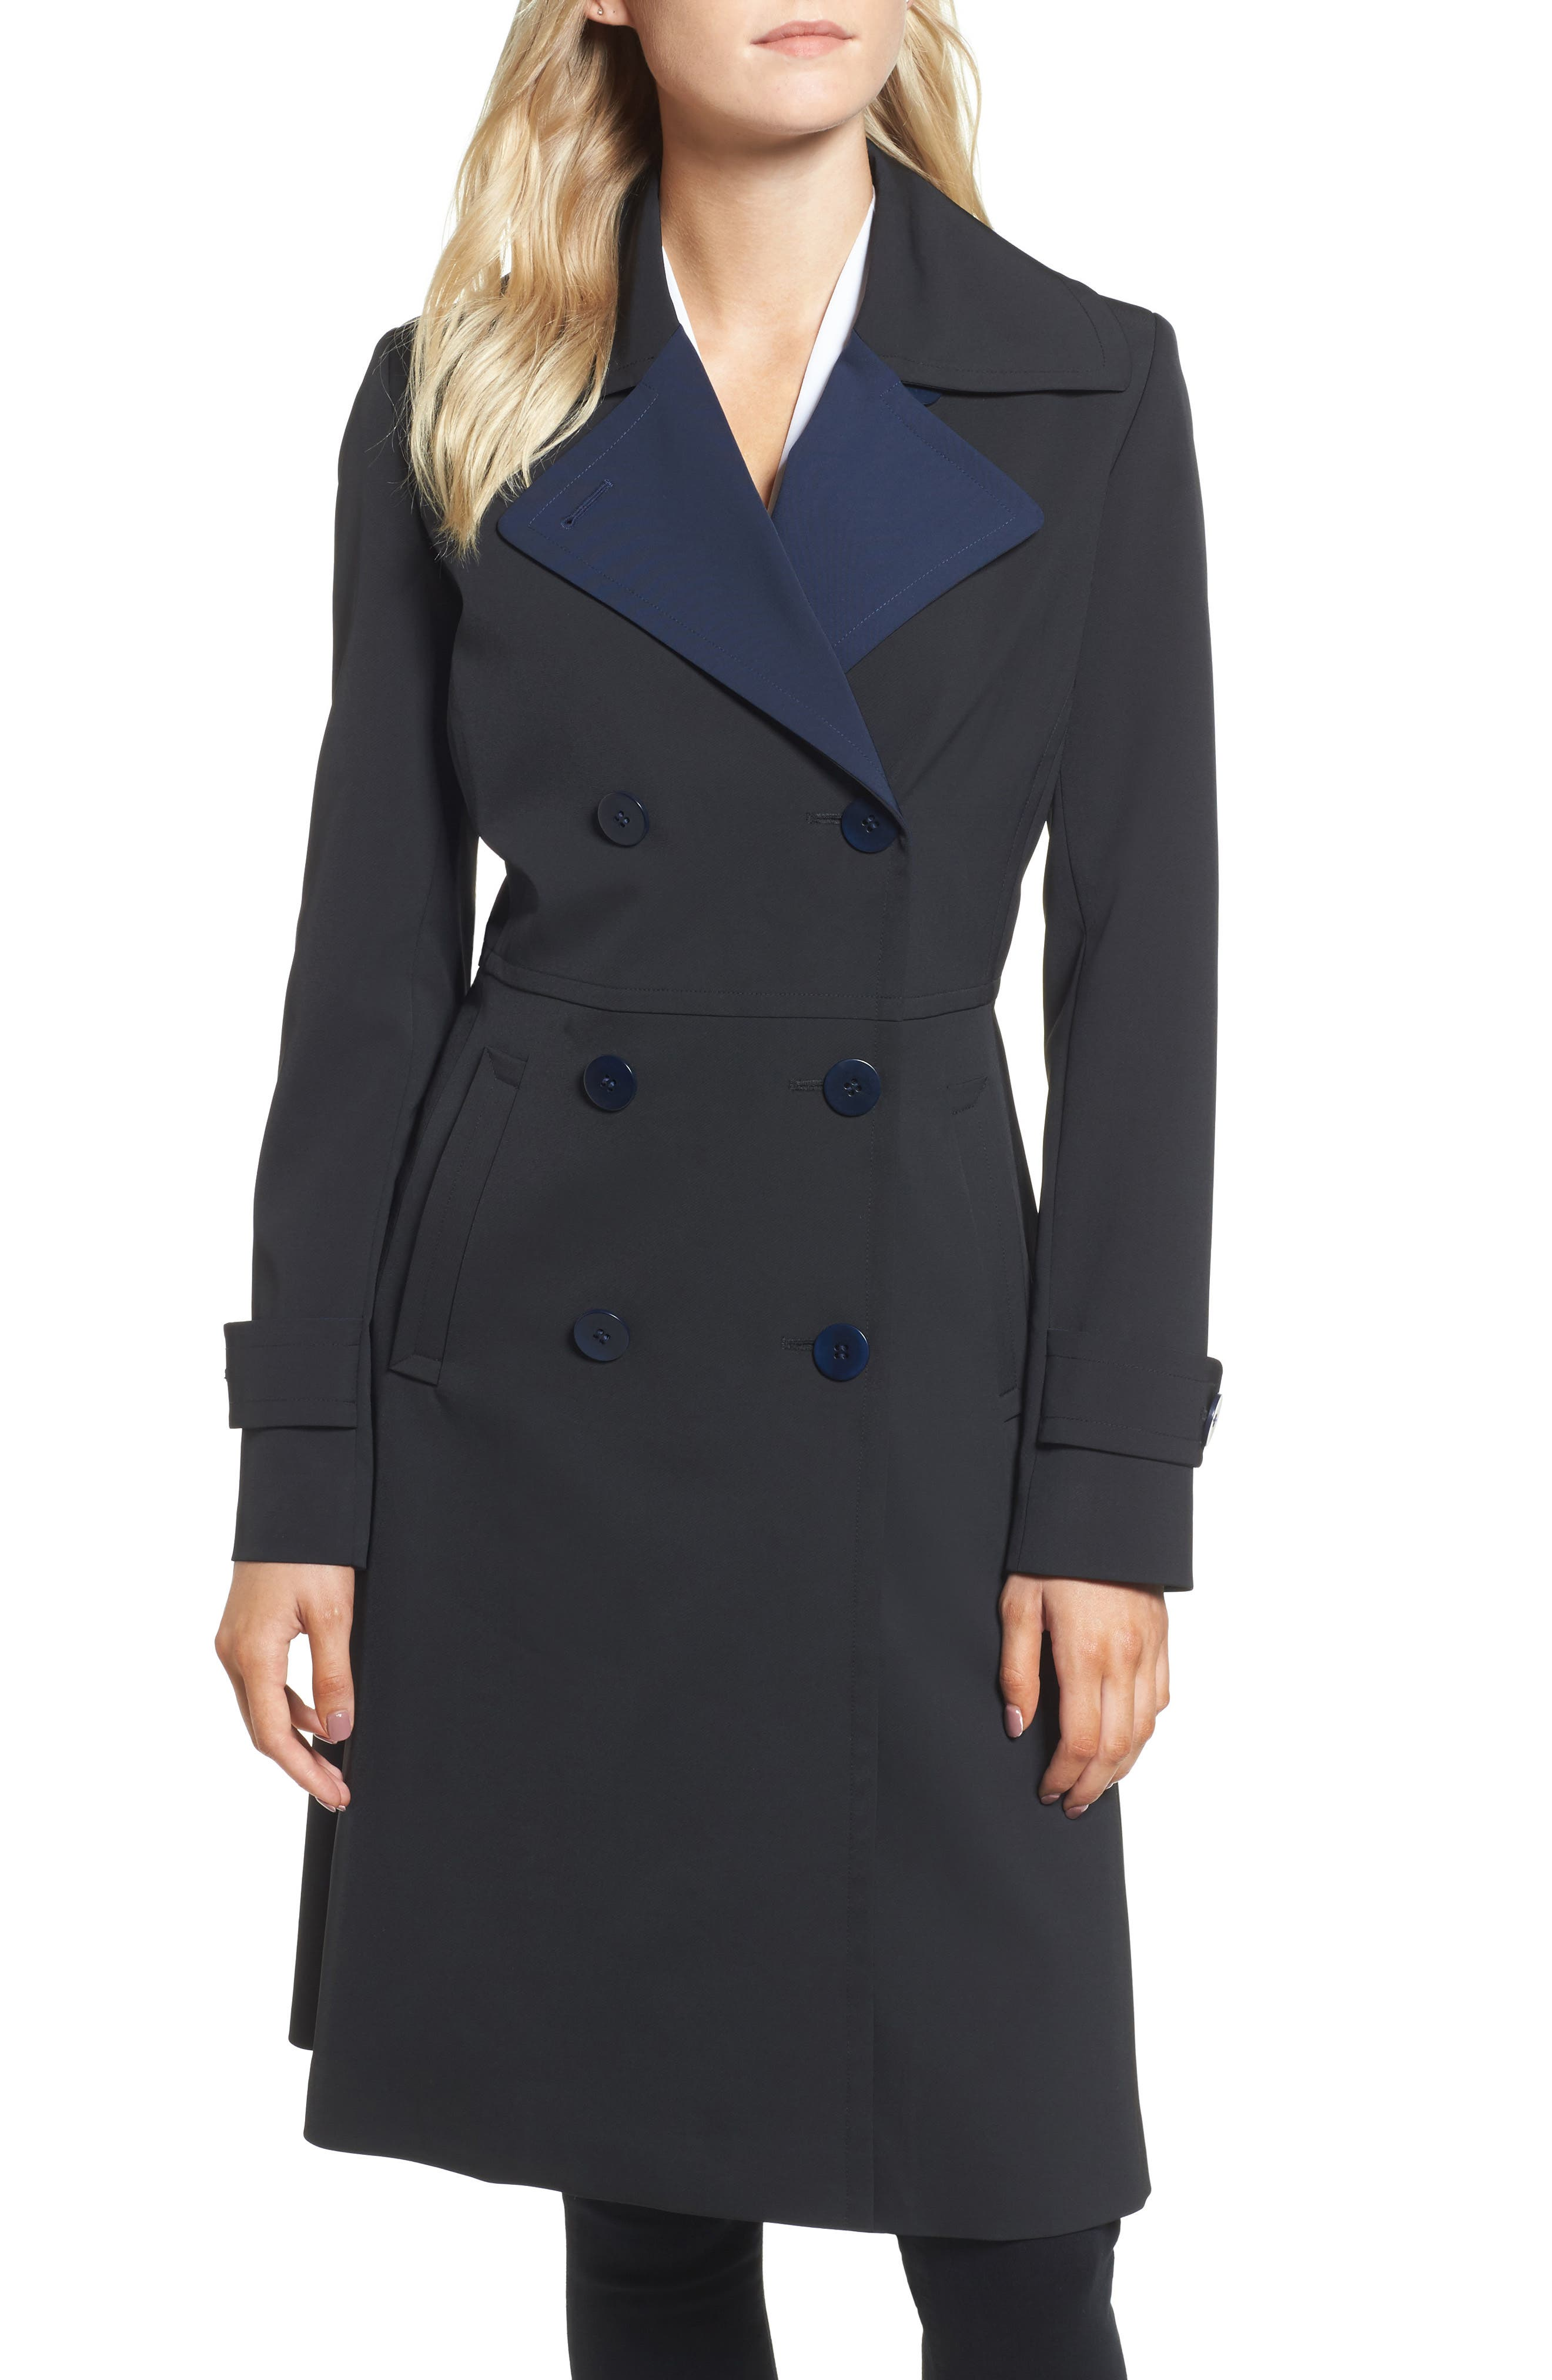 Isabella Two-Tone Double Breasted Trench Raincoat,                             Main thumbnail 1, color,                             Black/ Navy